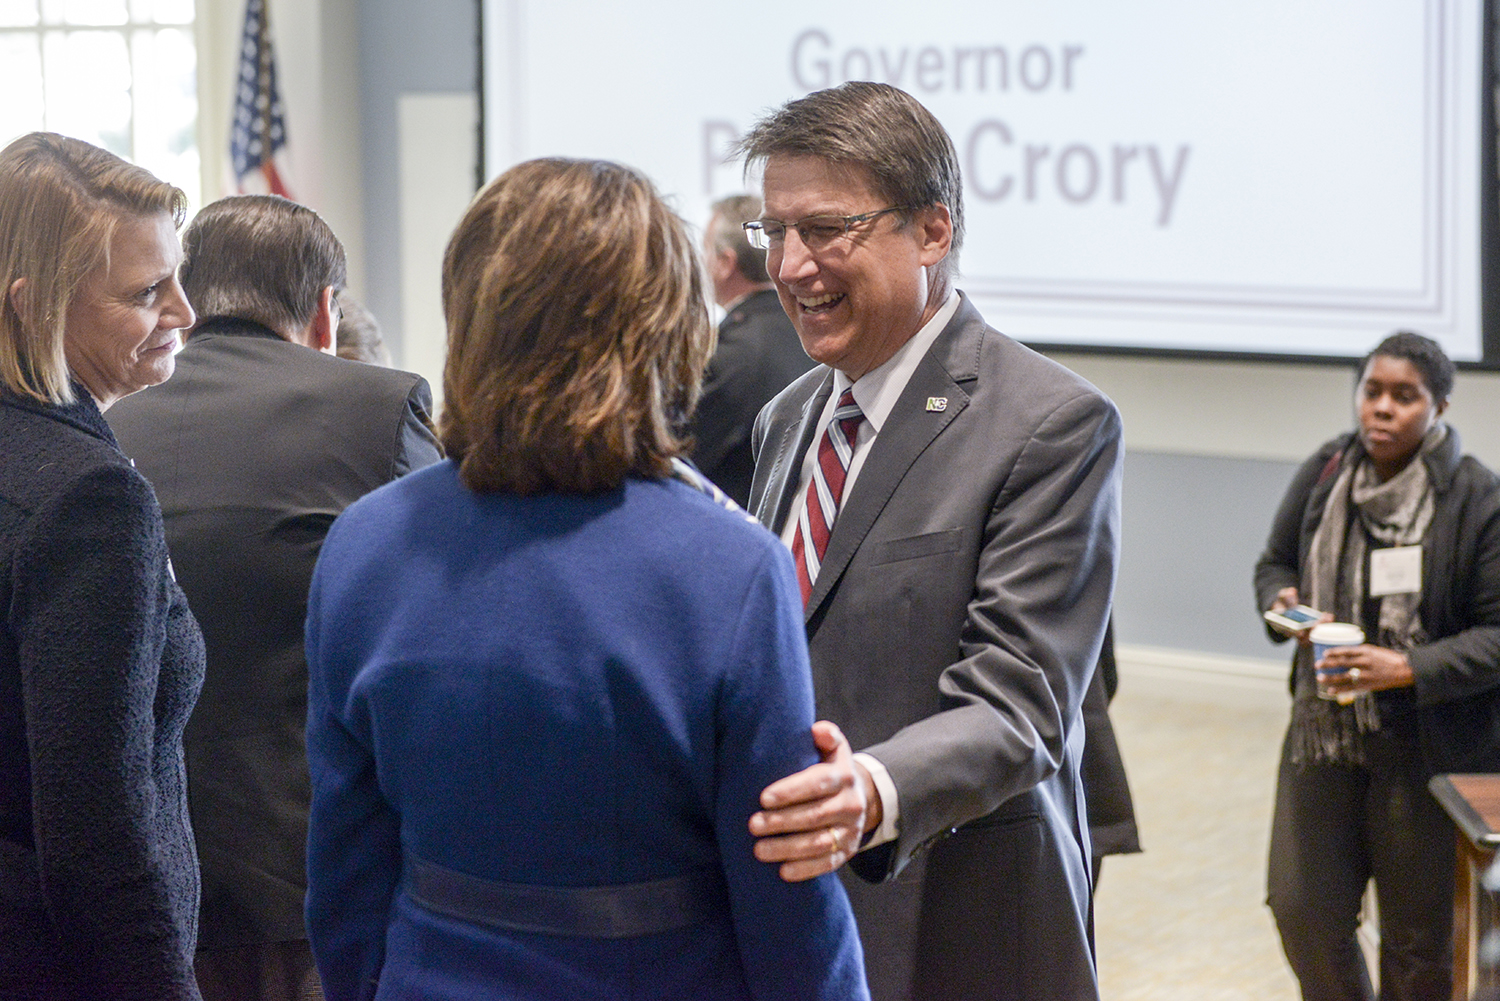 Gov. McCrory greeted presidents from private and public universities throughout the state.